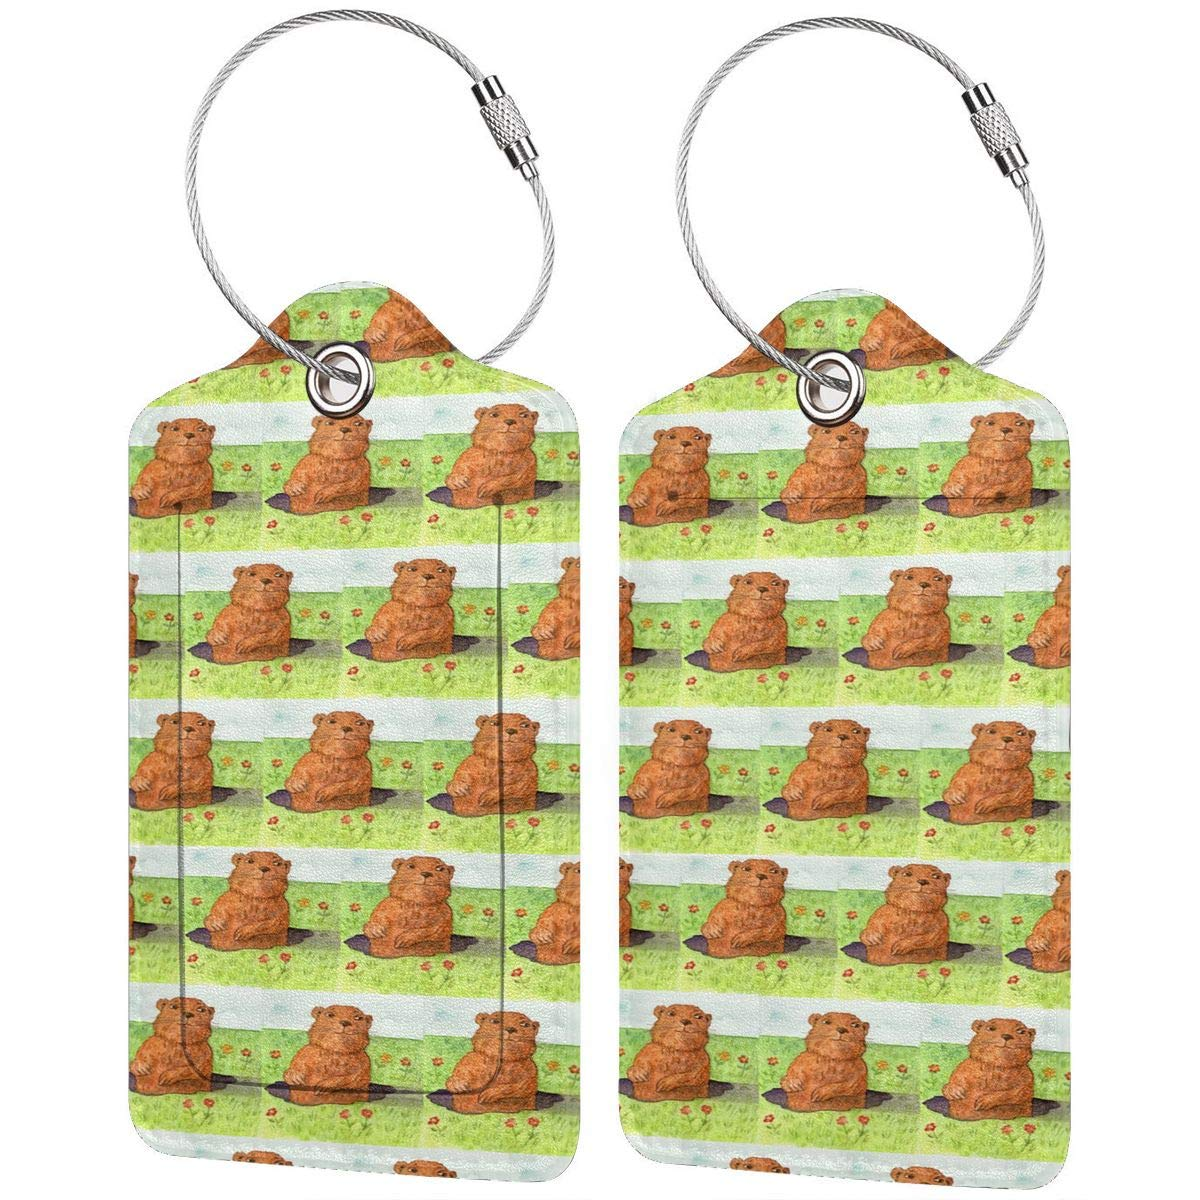 Groundhog Day Leather Luggage Tags Suitcase Tag Travel Bag Labels With Privacy Cover For Men Women 2 Pack 4 Pack